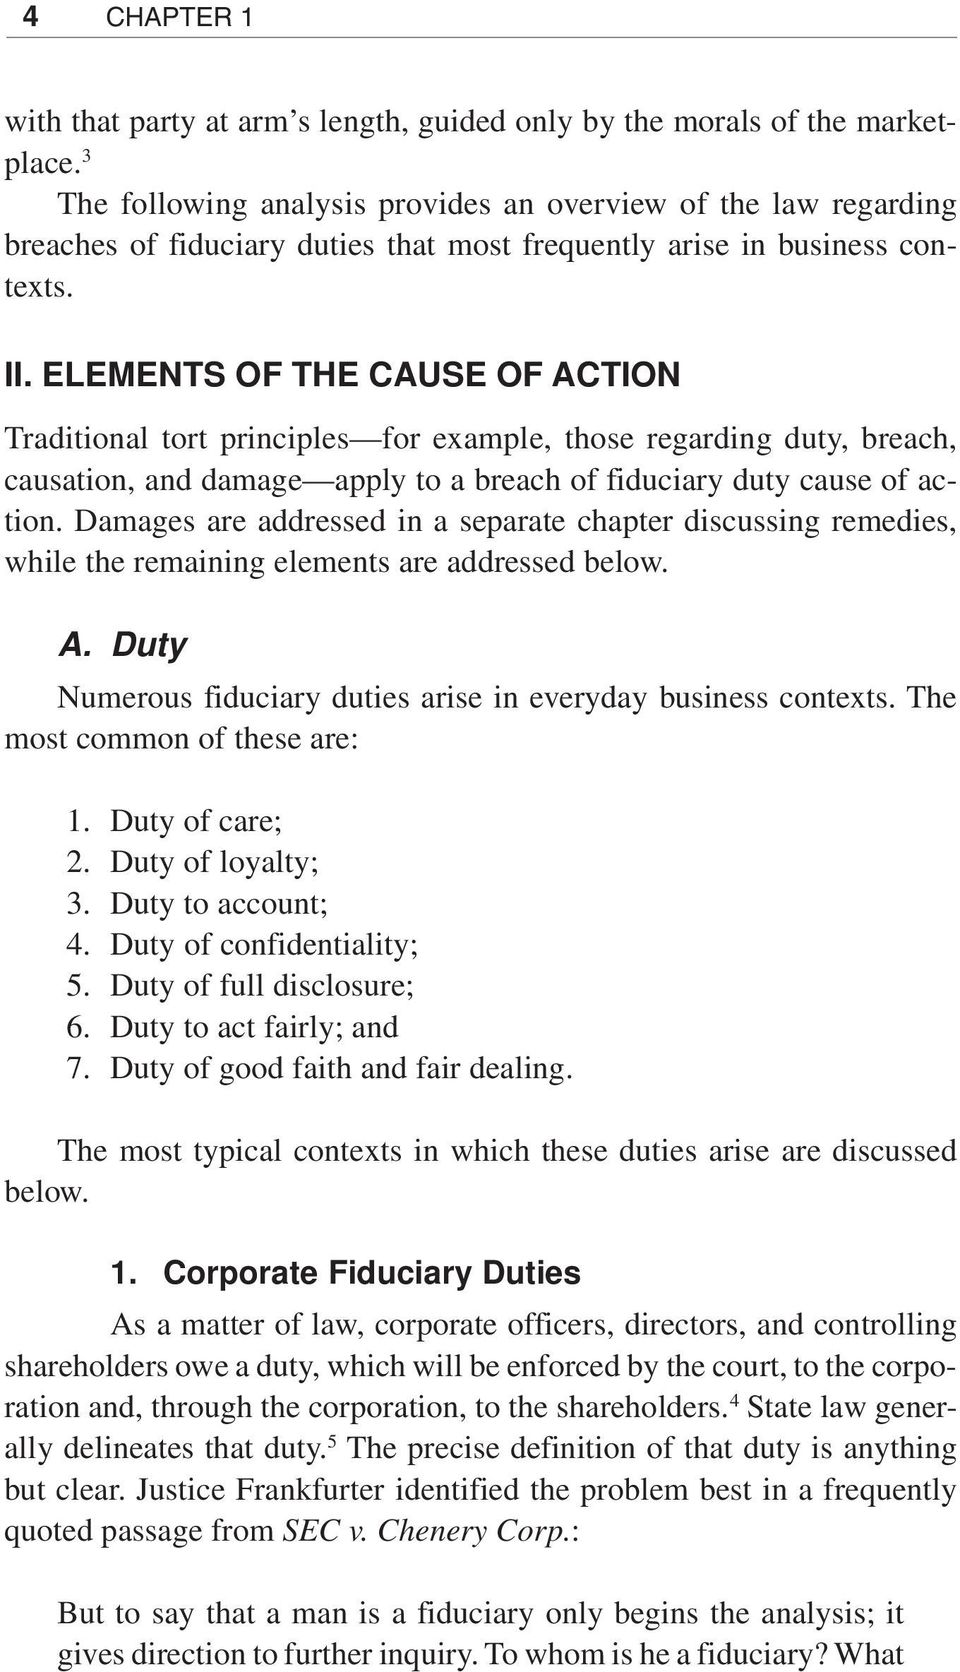 breach of fiduciary duty of director Introduction the canada business corporations act() (cbca) imposes statutory liabilities on directors of federally incorporated companiesin addition, directors can be held liable for a breach of their fiduciary duties owed to the corporation this paper provides a brief review of relevant cbca provisions and discusses some of the policy.